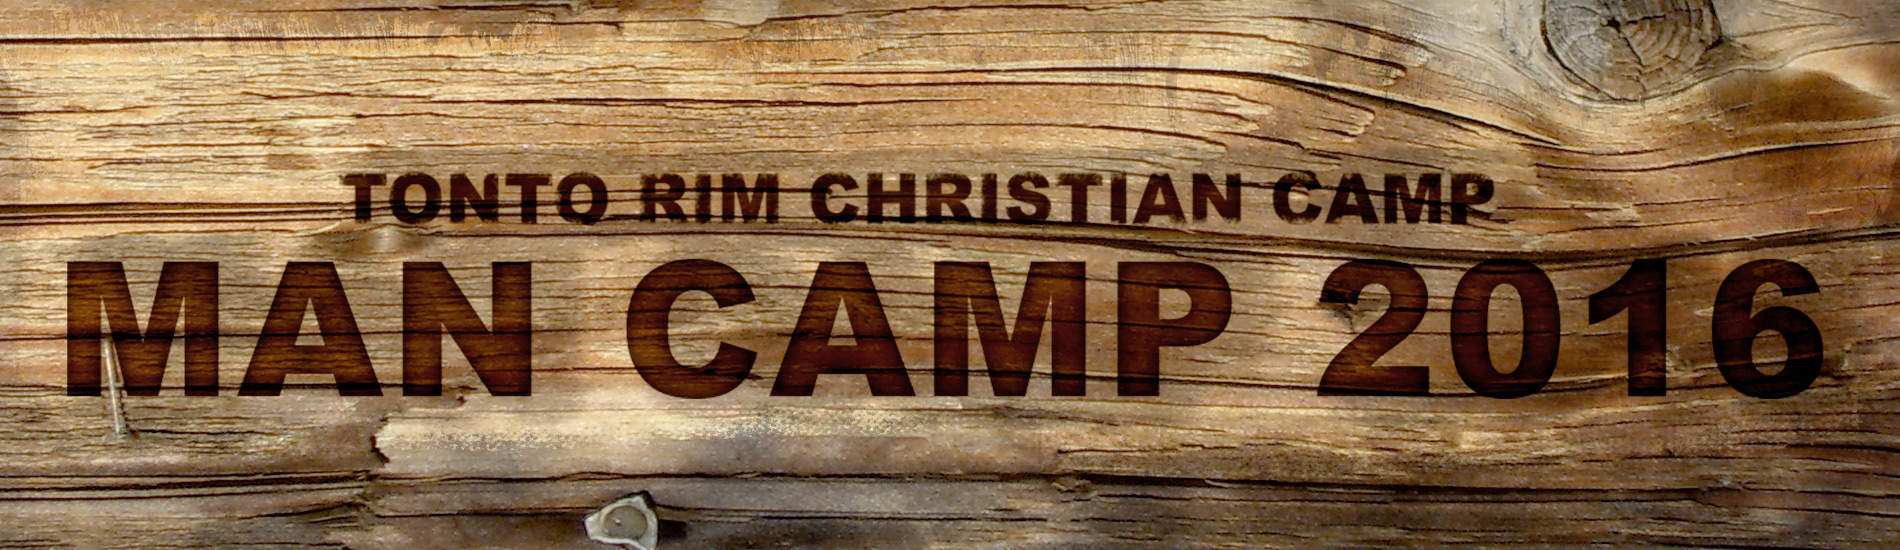 Man Camp 2015 Christian Mens Retreat